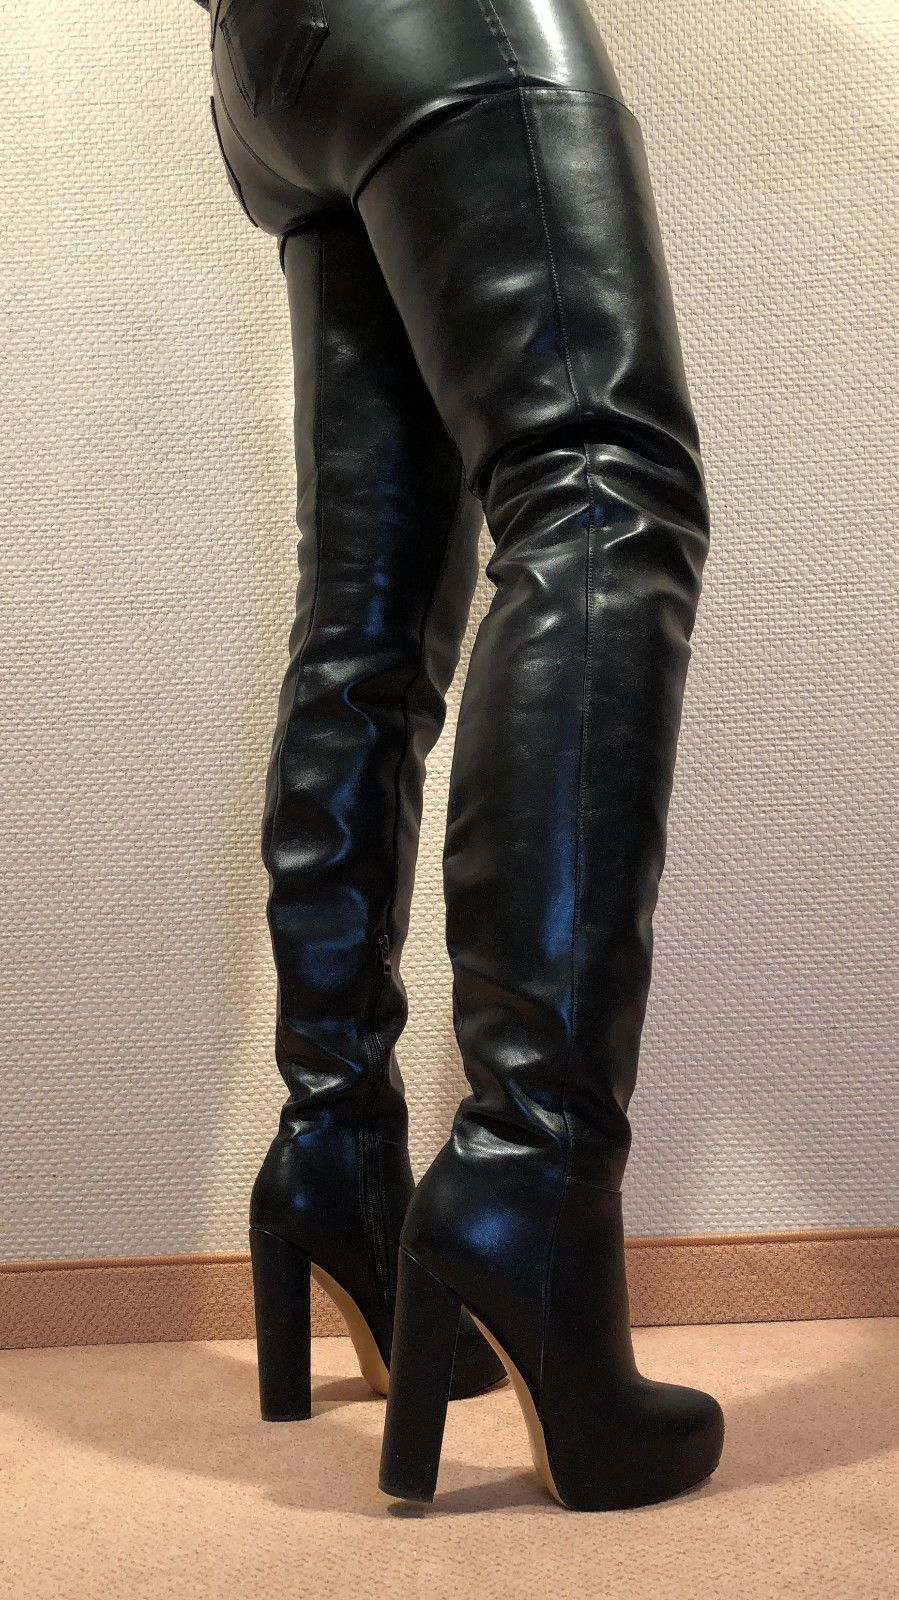 e90c40a270c86a Gr.45 TOP! Exclusive Sexy Women s Shoes Over the Knee Boots Stiletto ...